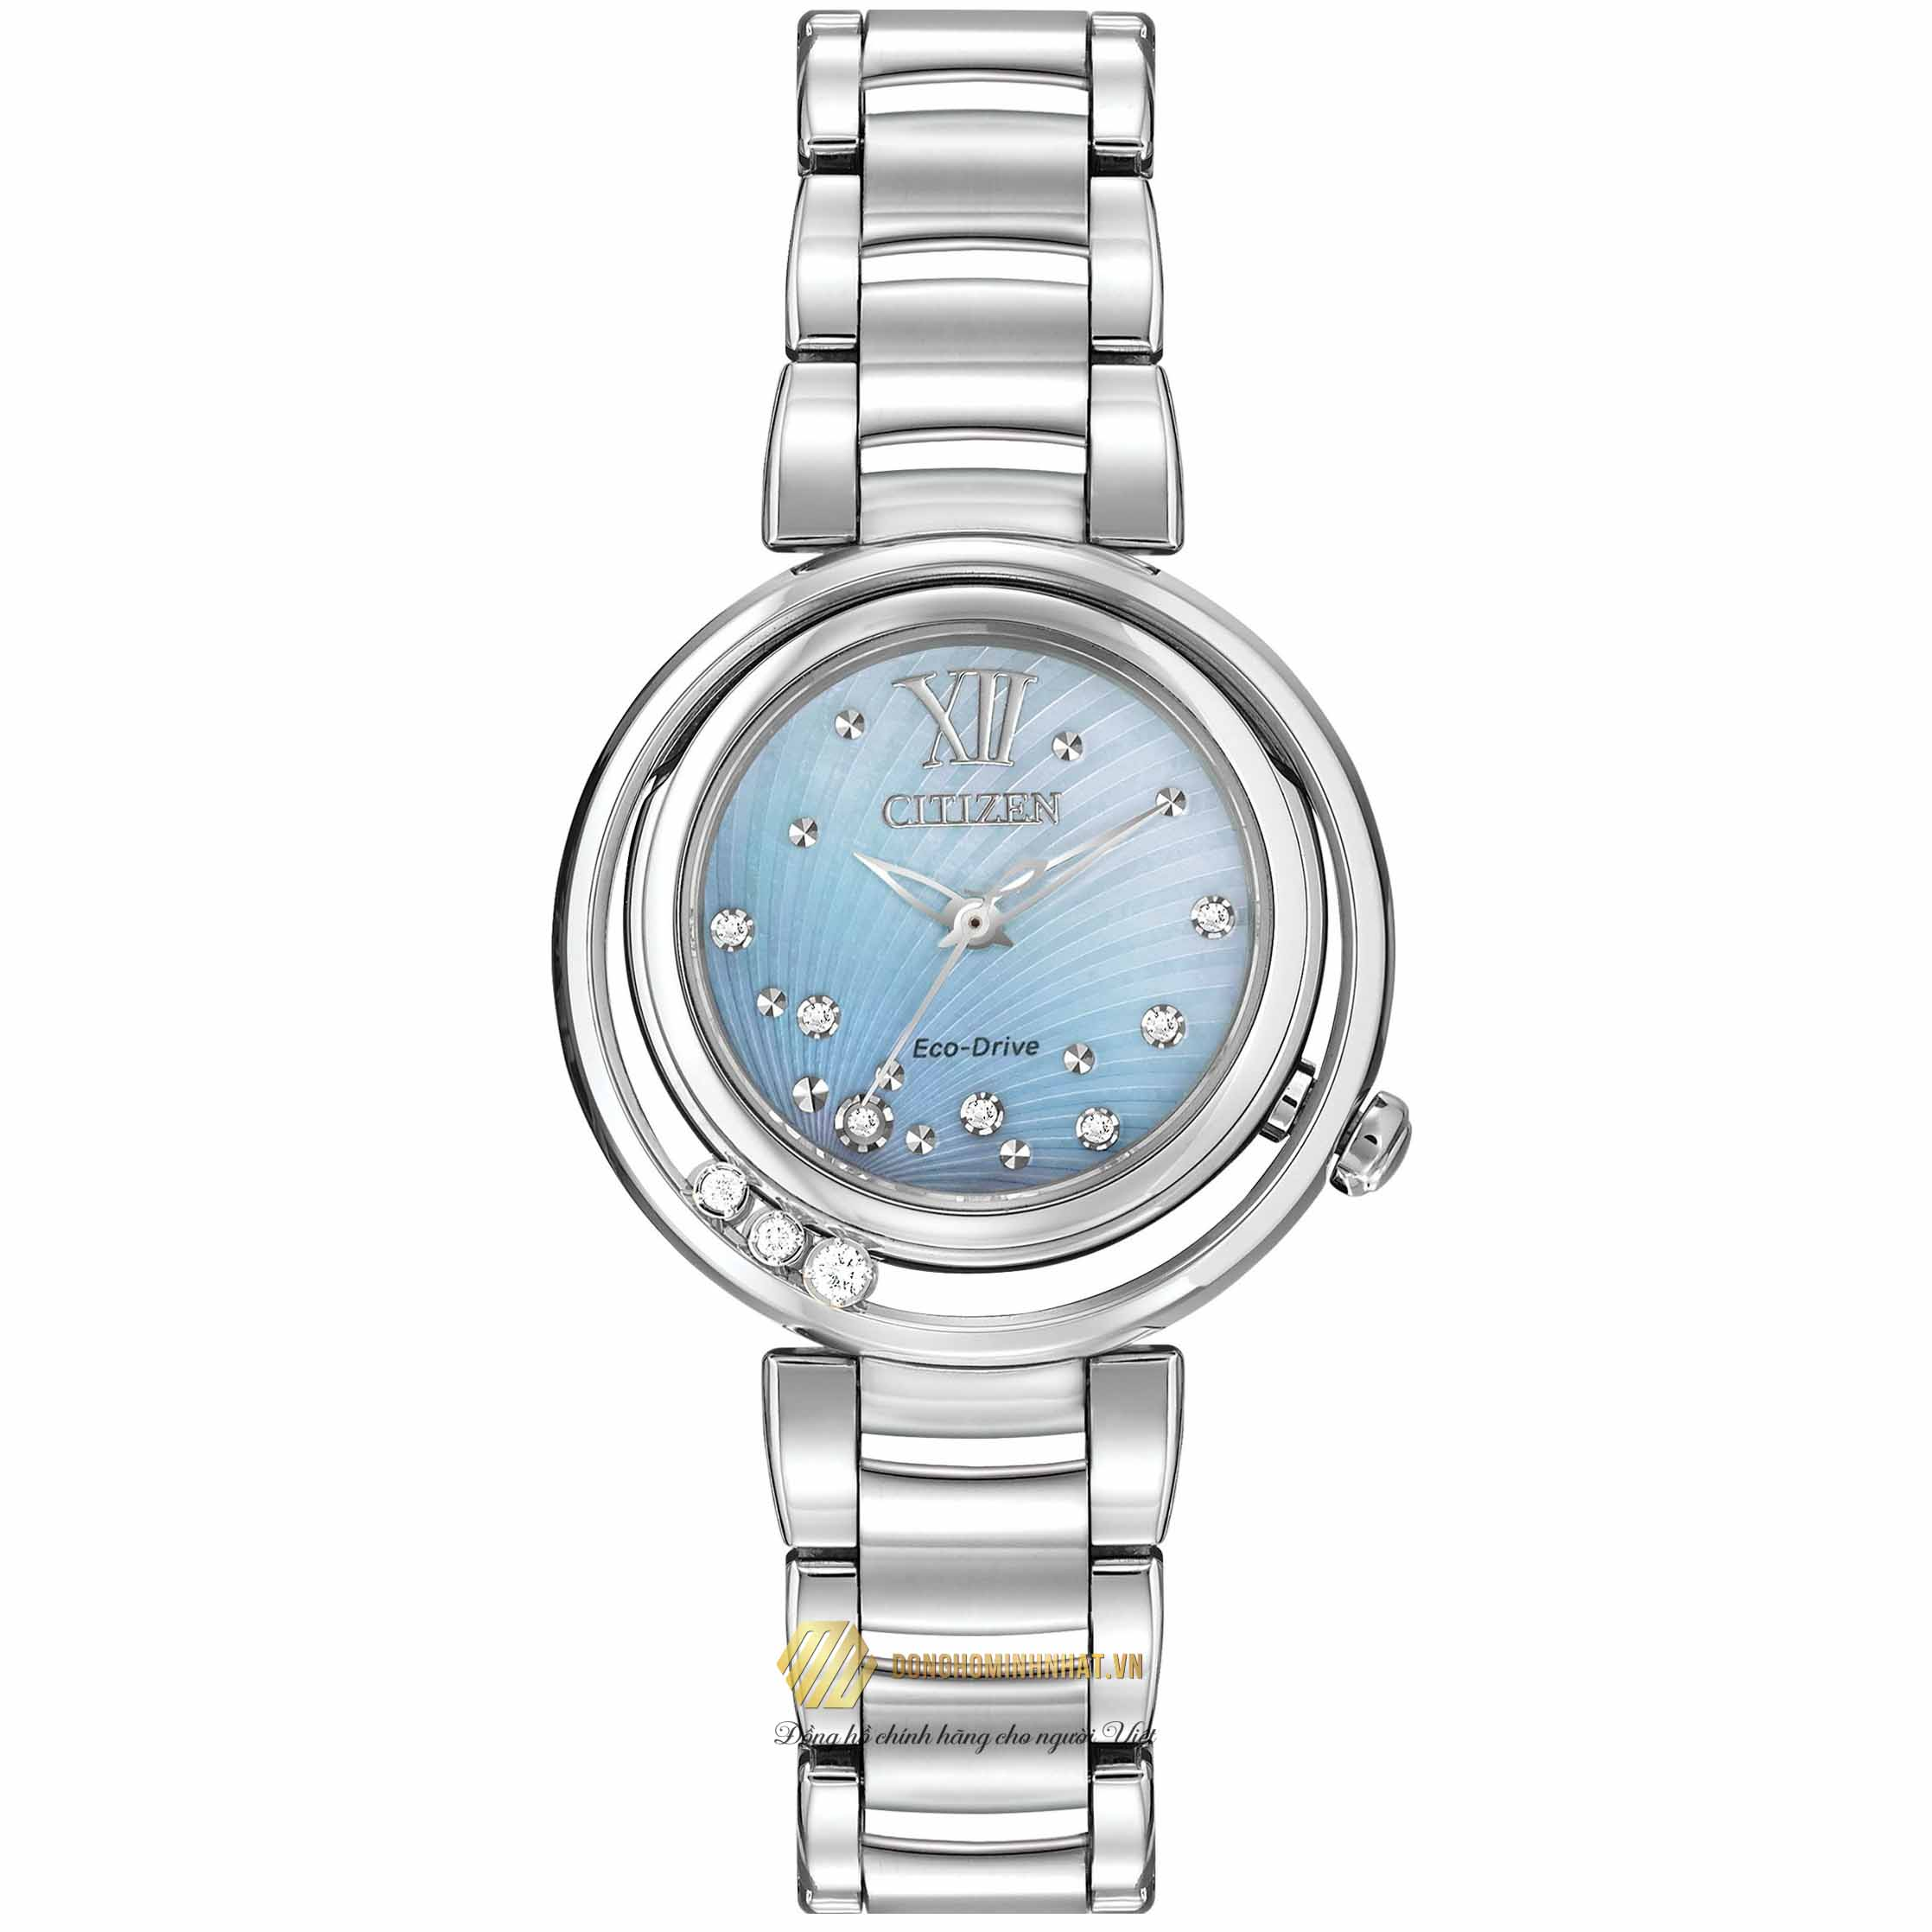 ĐỒNG HỒ CITIZEN EM0320-59D Eco-Drive Women's Sunrise Watch